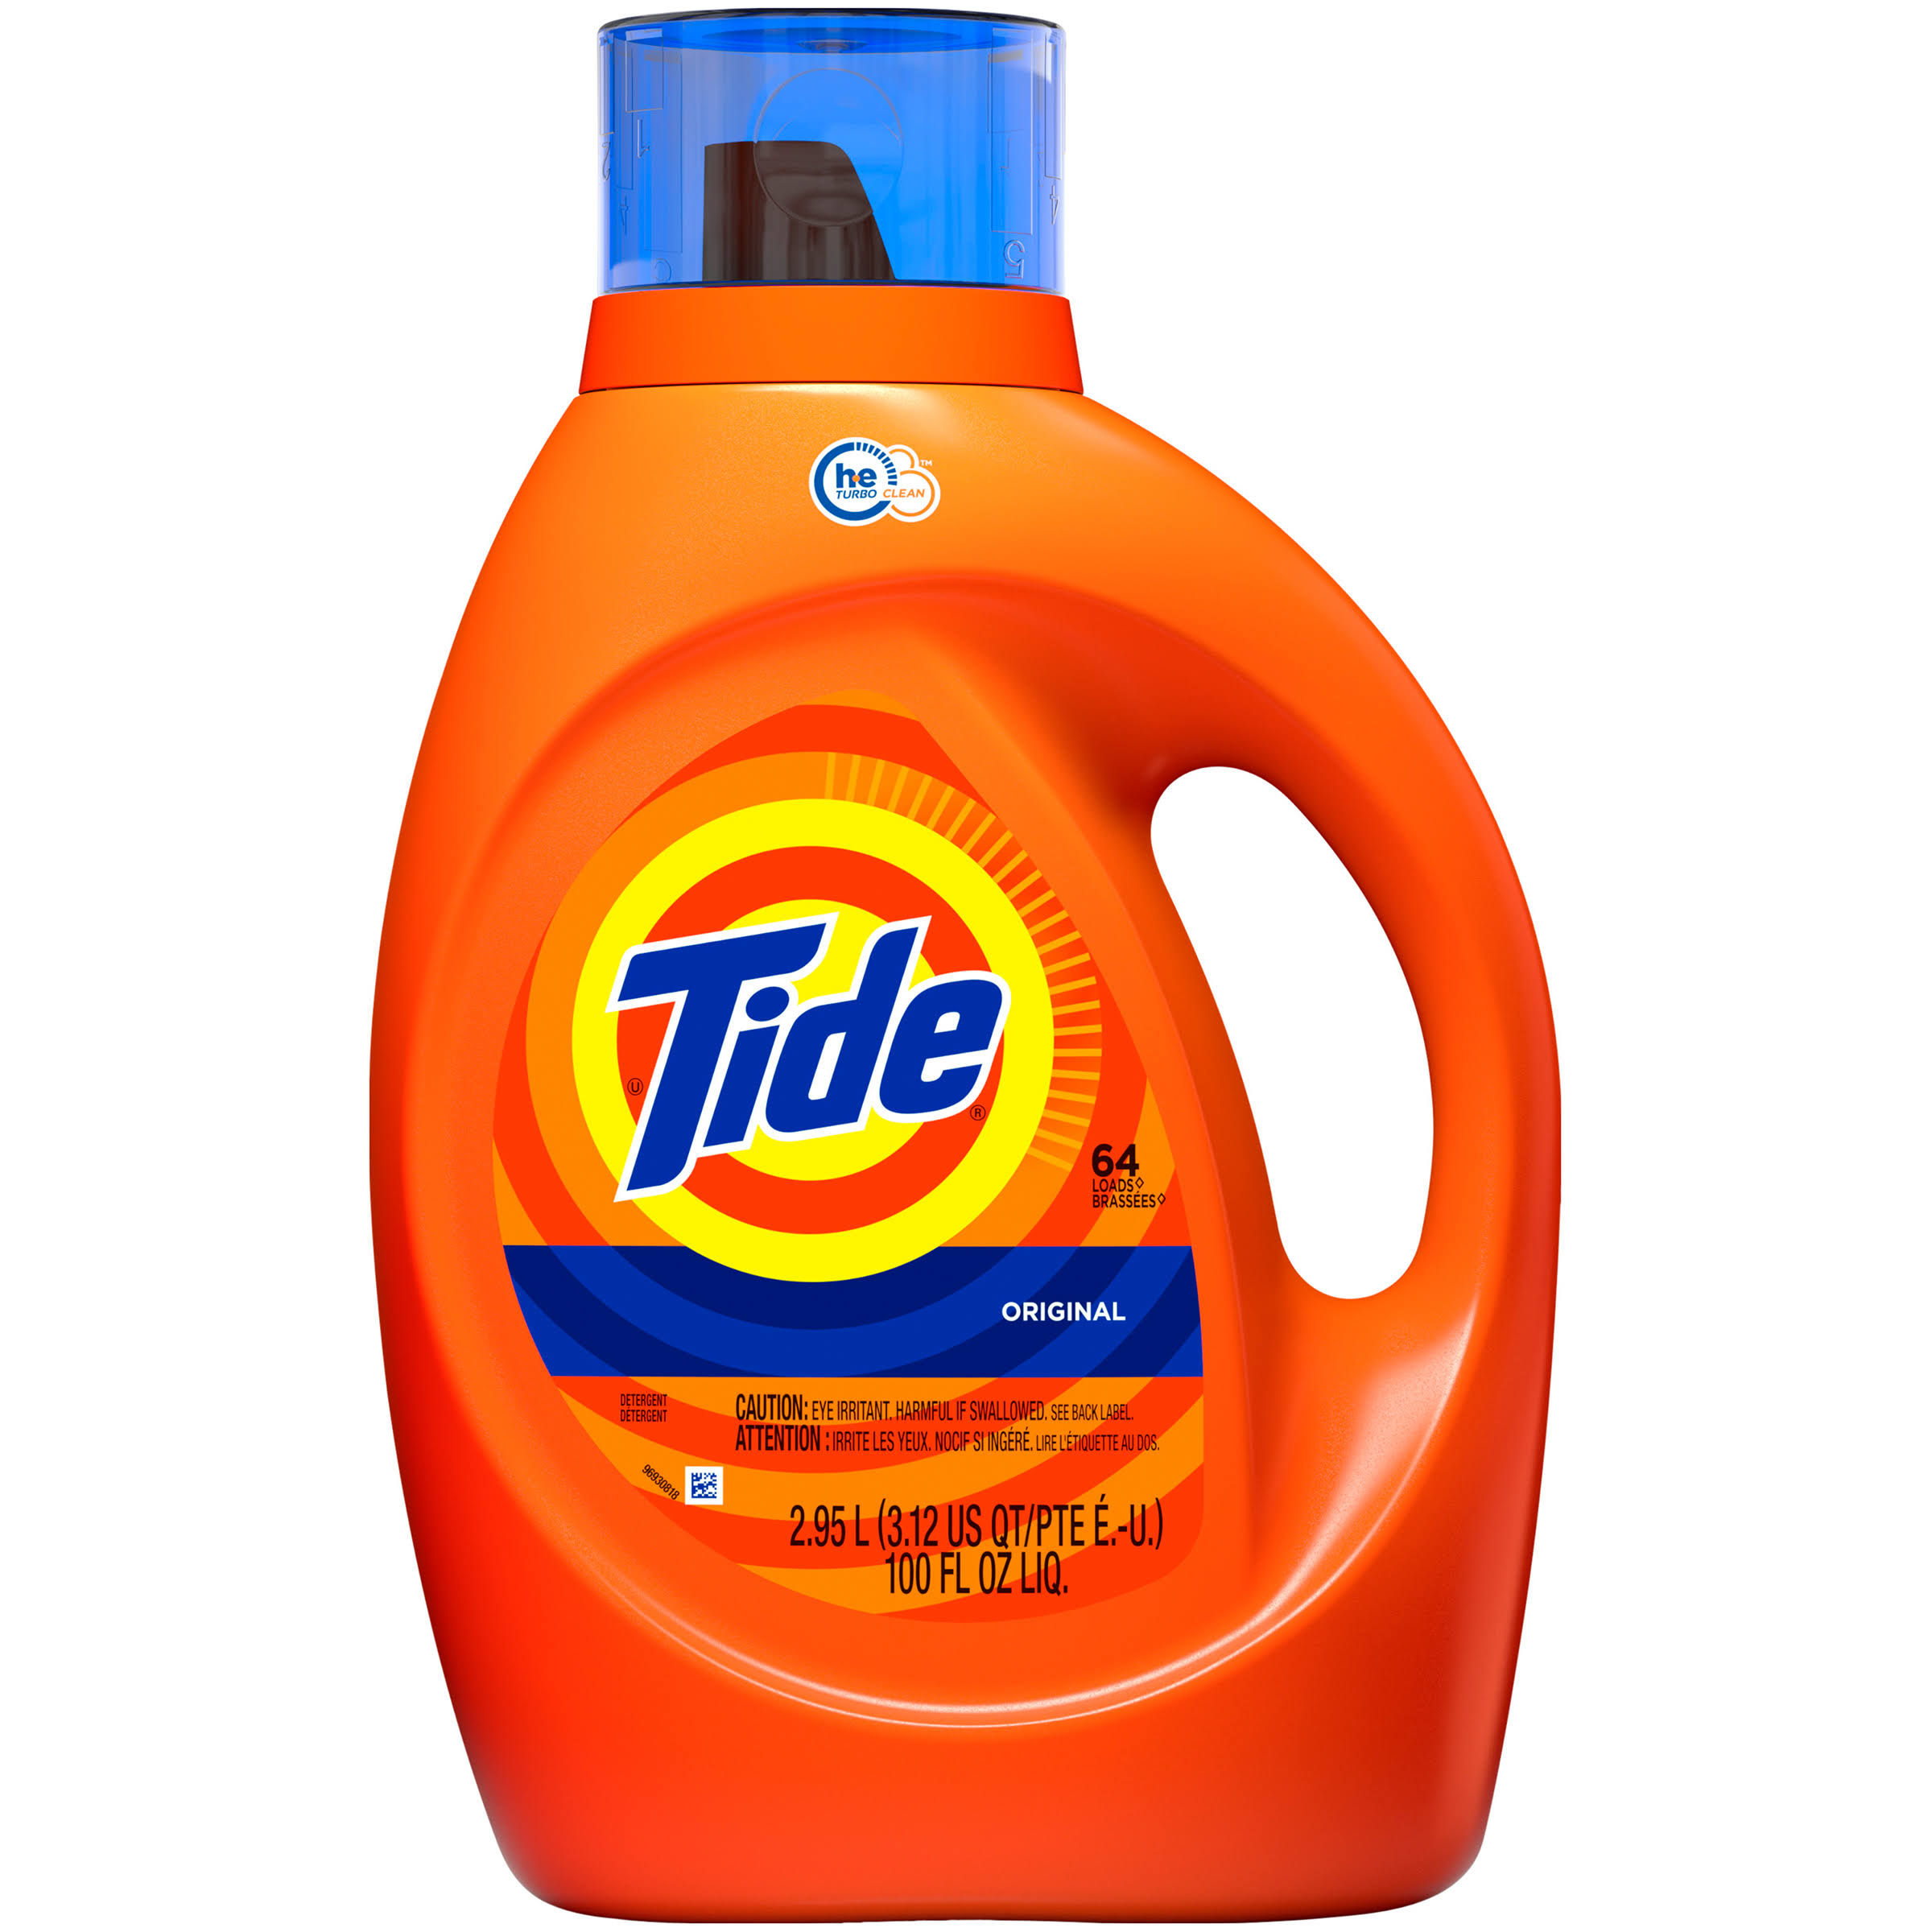 Tide Original Liquid Detergent - 64 loads, 100oz